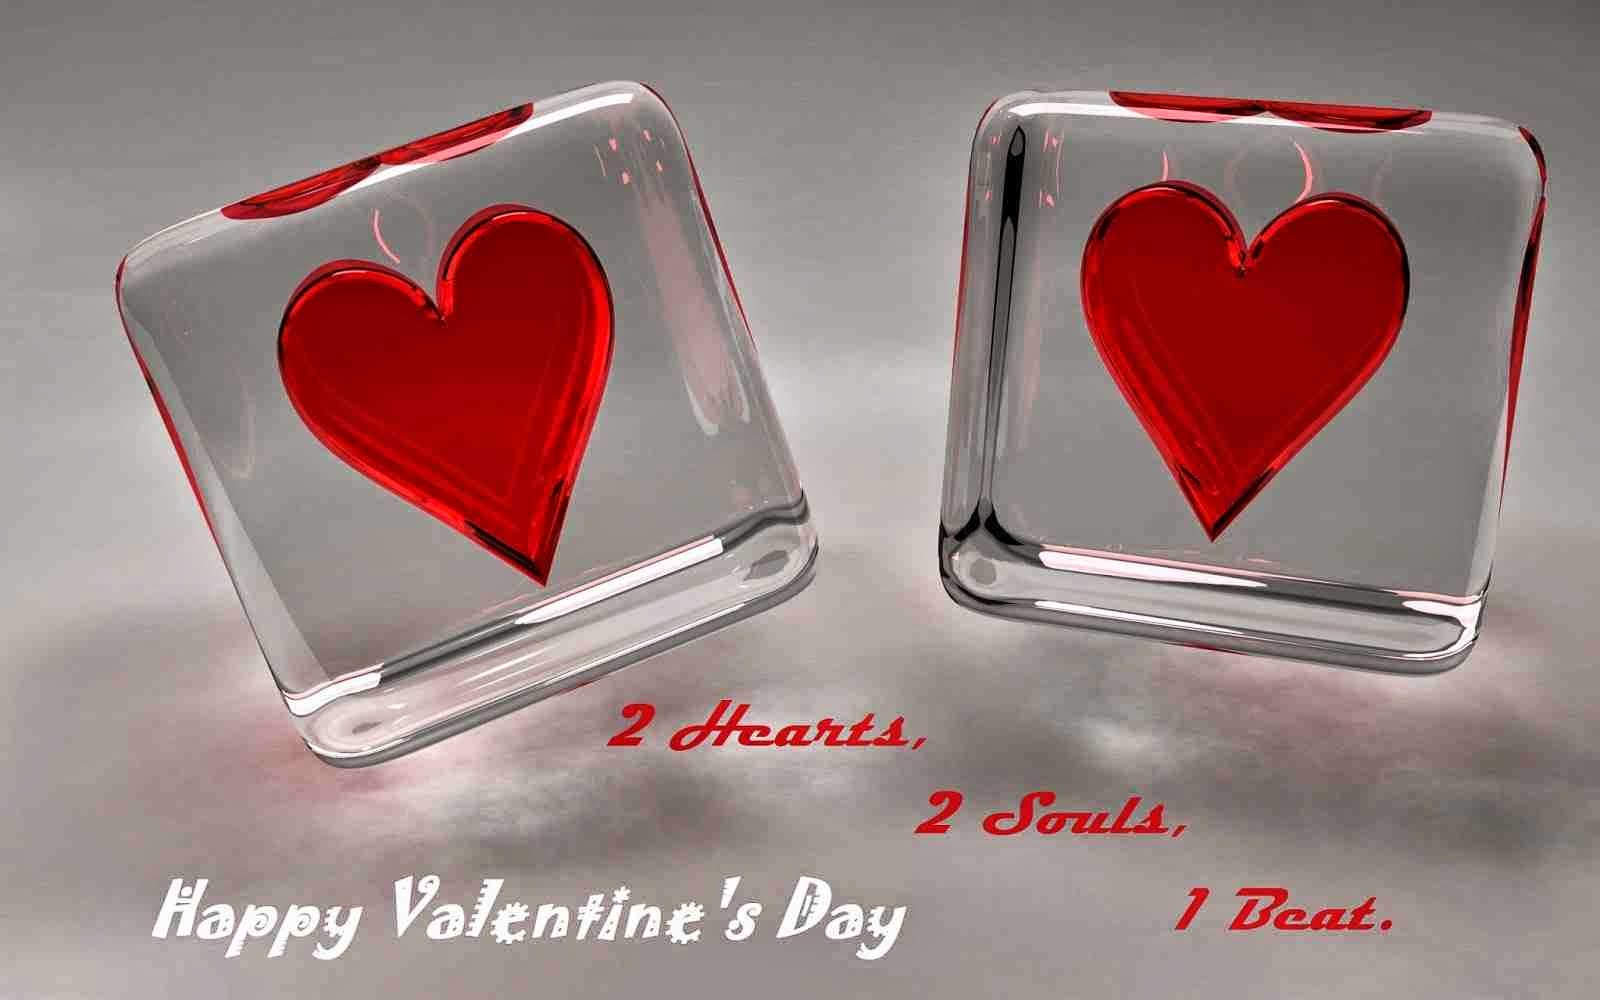 Free Love Poems And Quotes Real Love Quotes Urdu Poetry Shayari Love Sms Valentine Day Sms